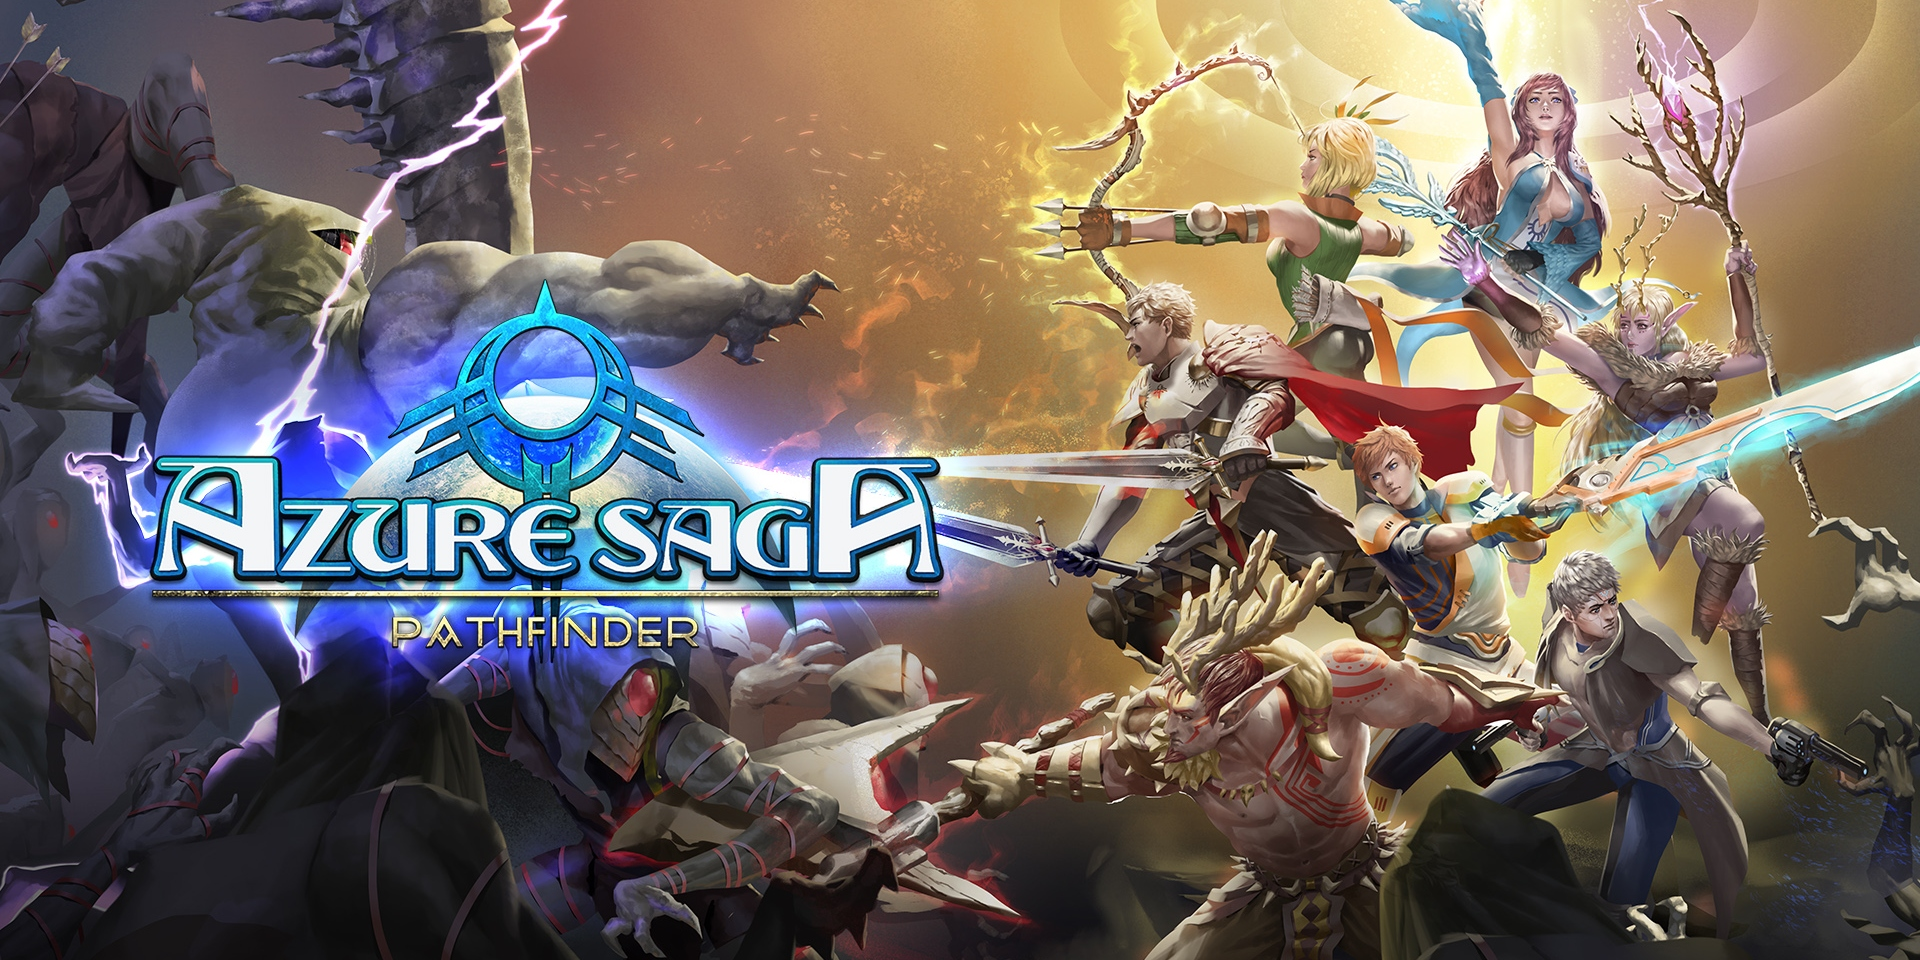 Expansive jRPG Azure Saga: Pathfinder is finally out on iOS